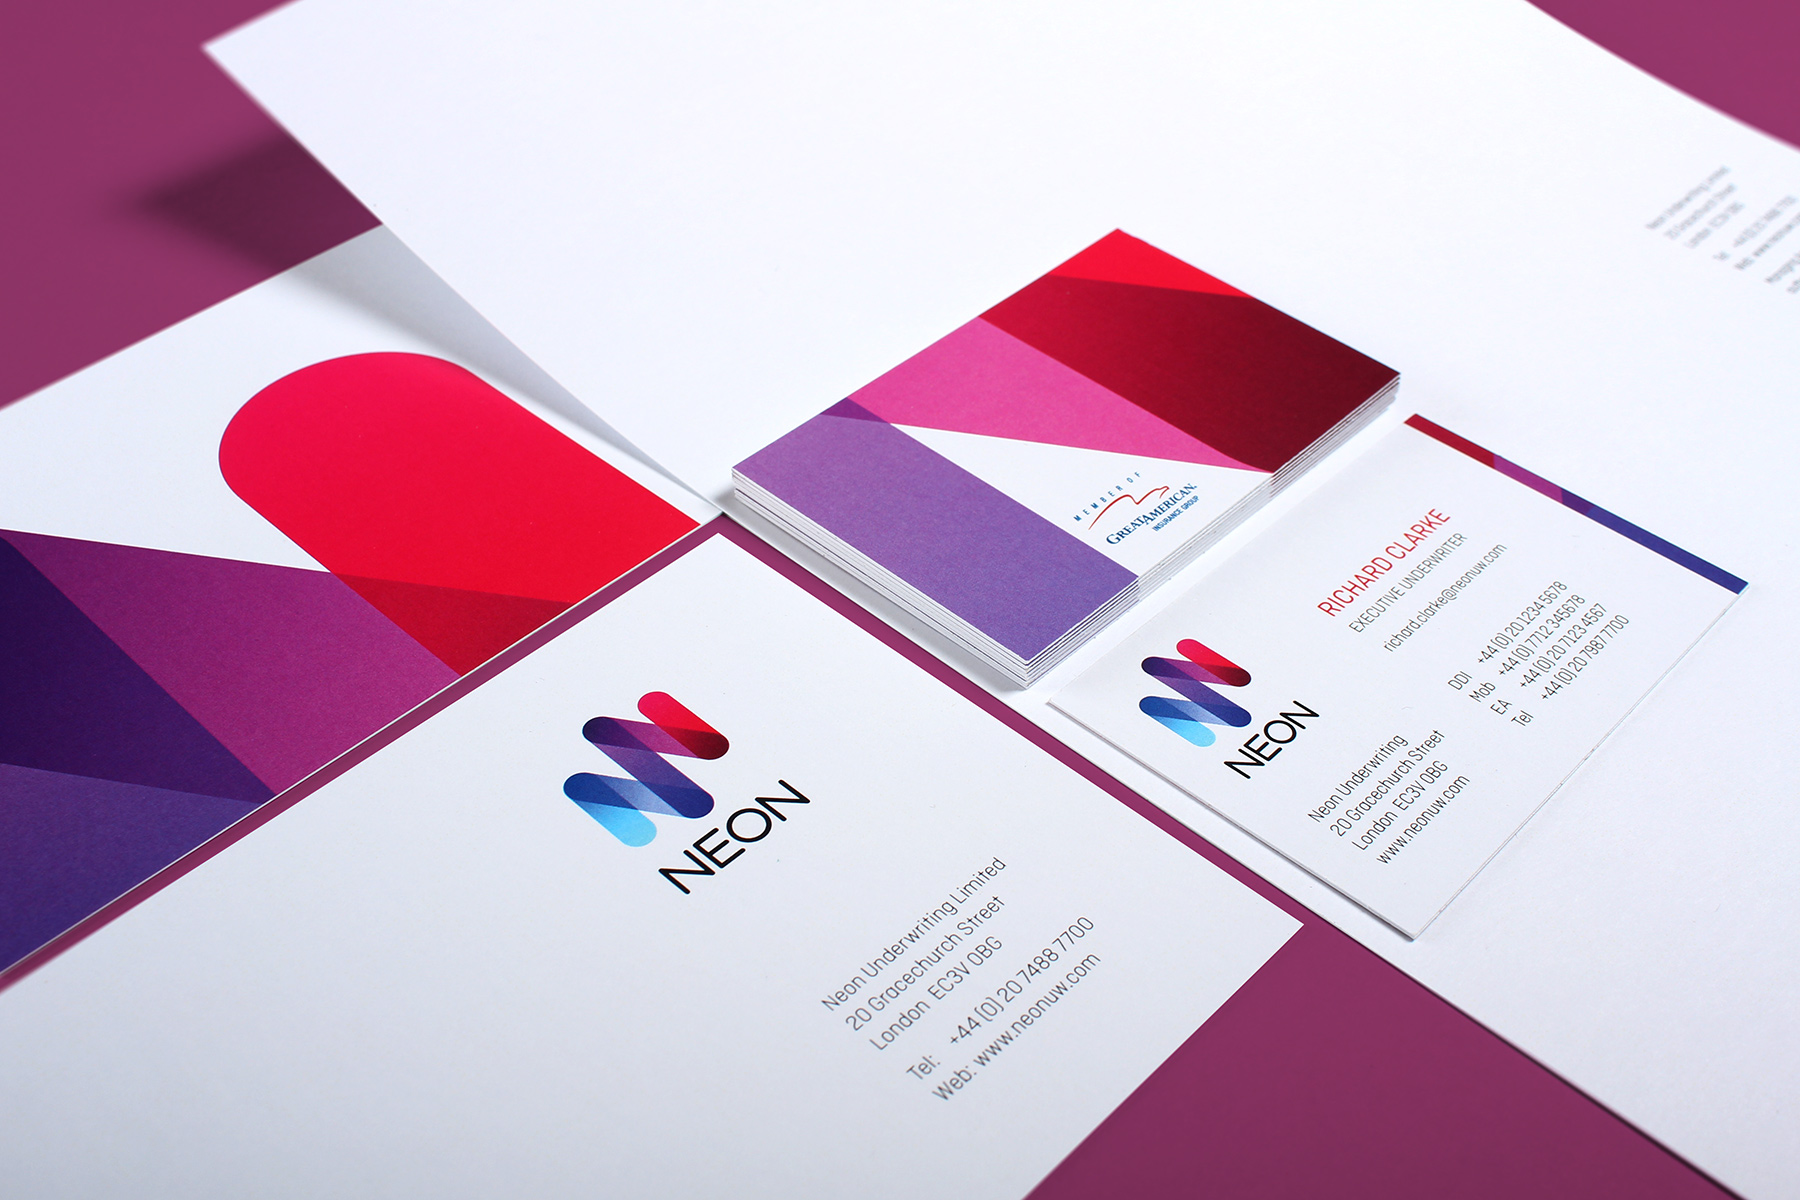 The print and stationery look and feel is simple, bright and bold. We utilised a contemporary rounded germanic font to add to the overall feel.